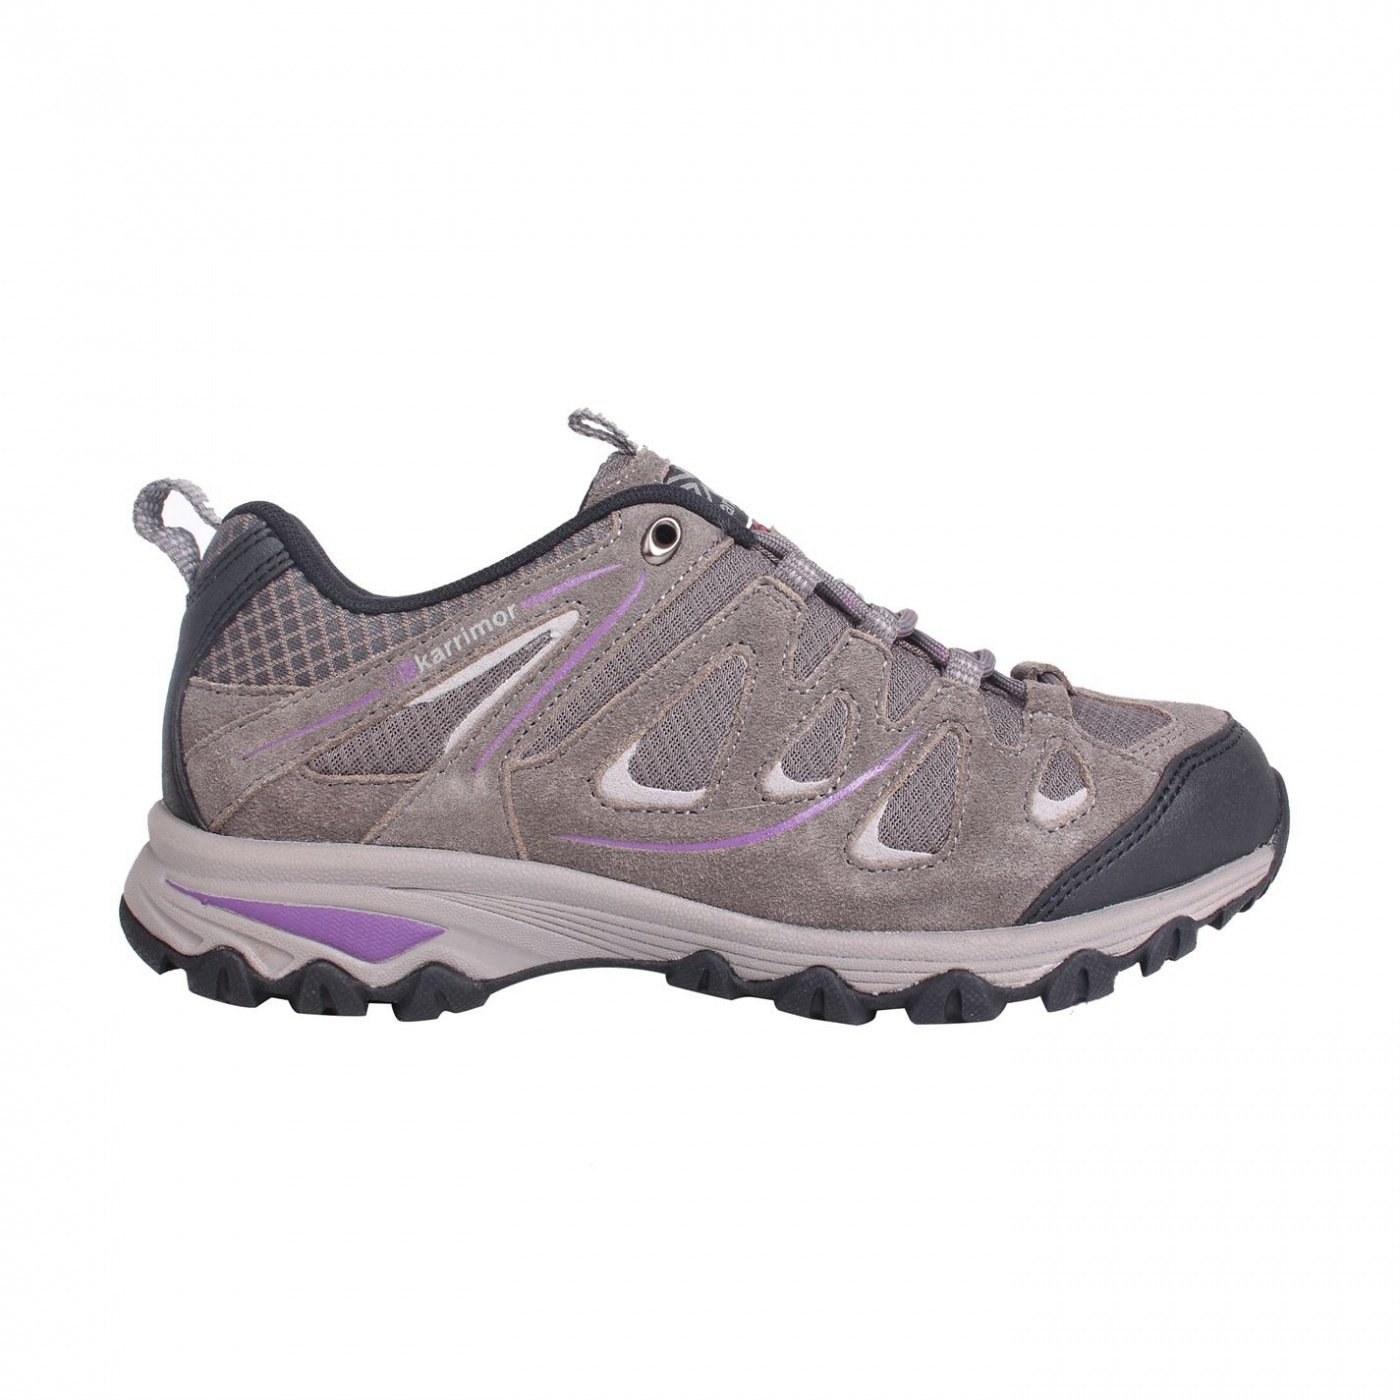 Women's walking shoes Karrimor Summit